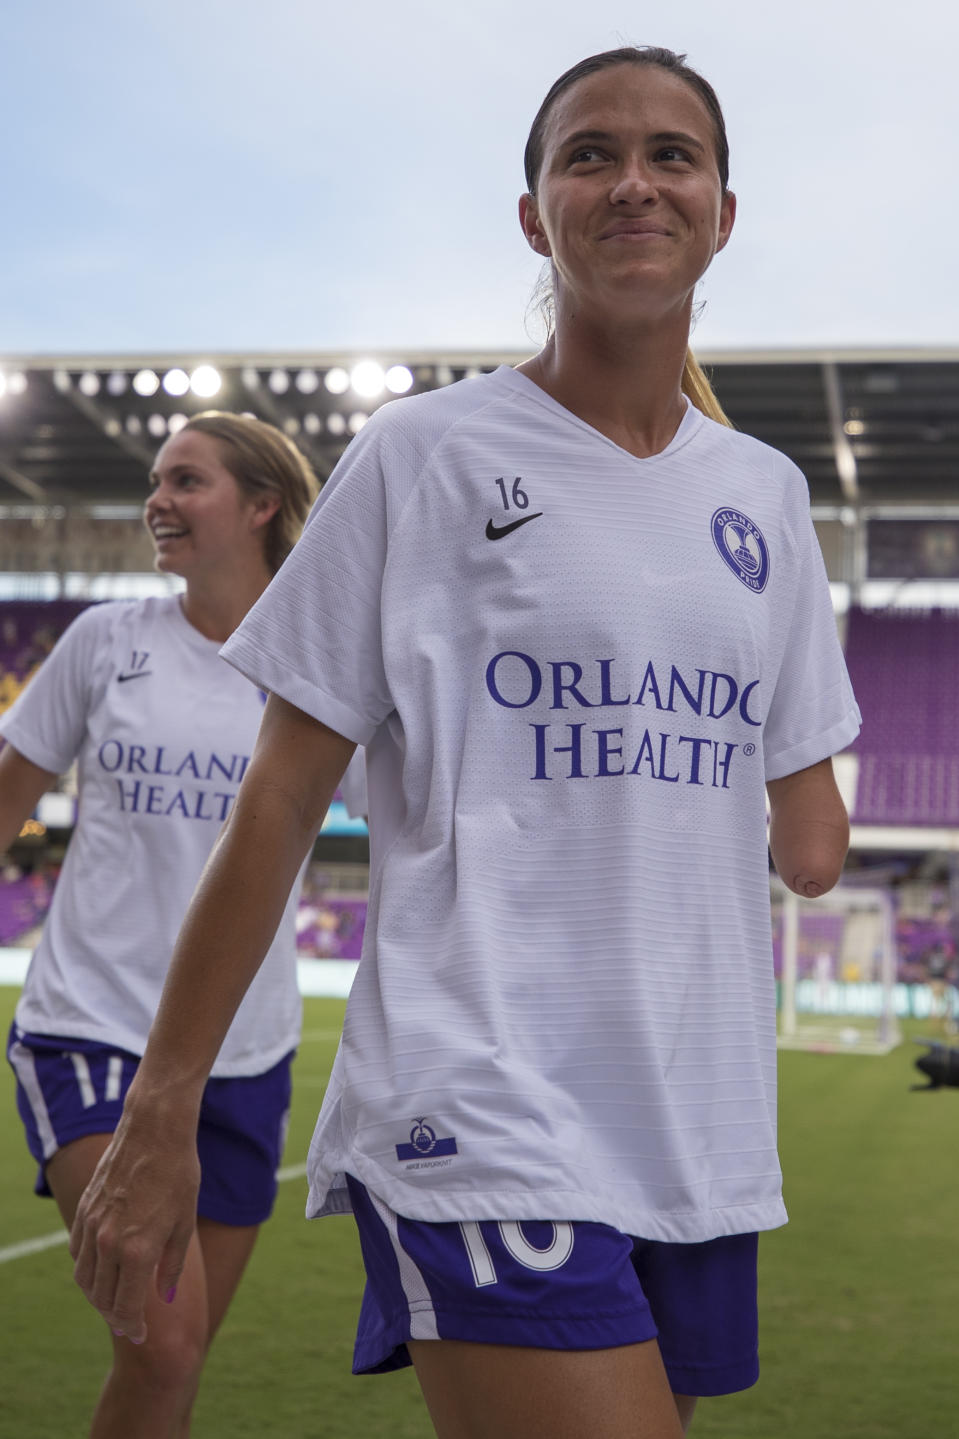 ORLANDO, FL - JULY 20: Orlando Pride defender Carson Pickett (16) before the soccer match between Sky Blue FC and the Orlando Pride on July 20, 2019, at Exploria Stadium in Orlando FL. (Photo by Joe Petro/Icon Sportswire via Getty Images)